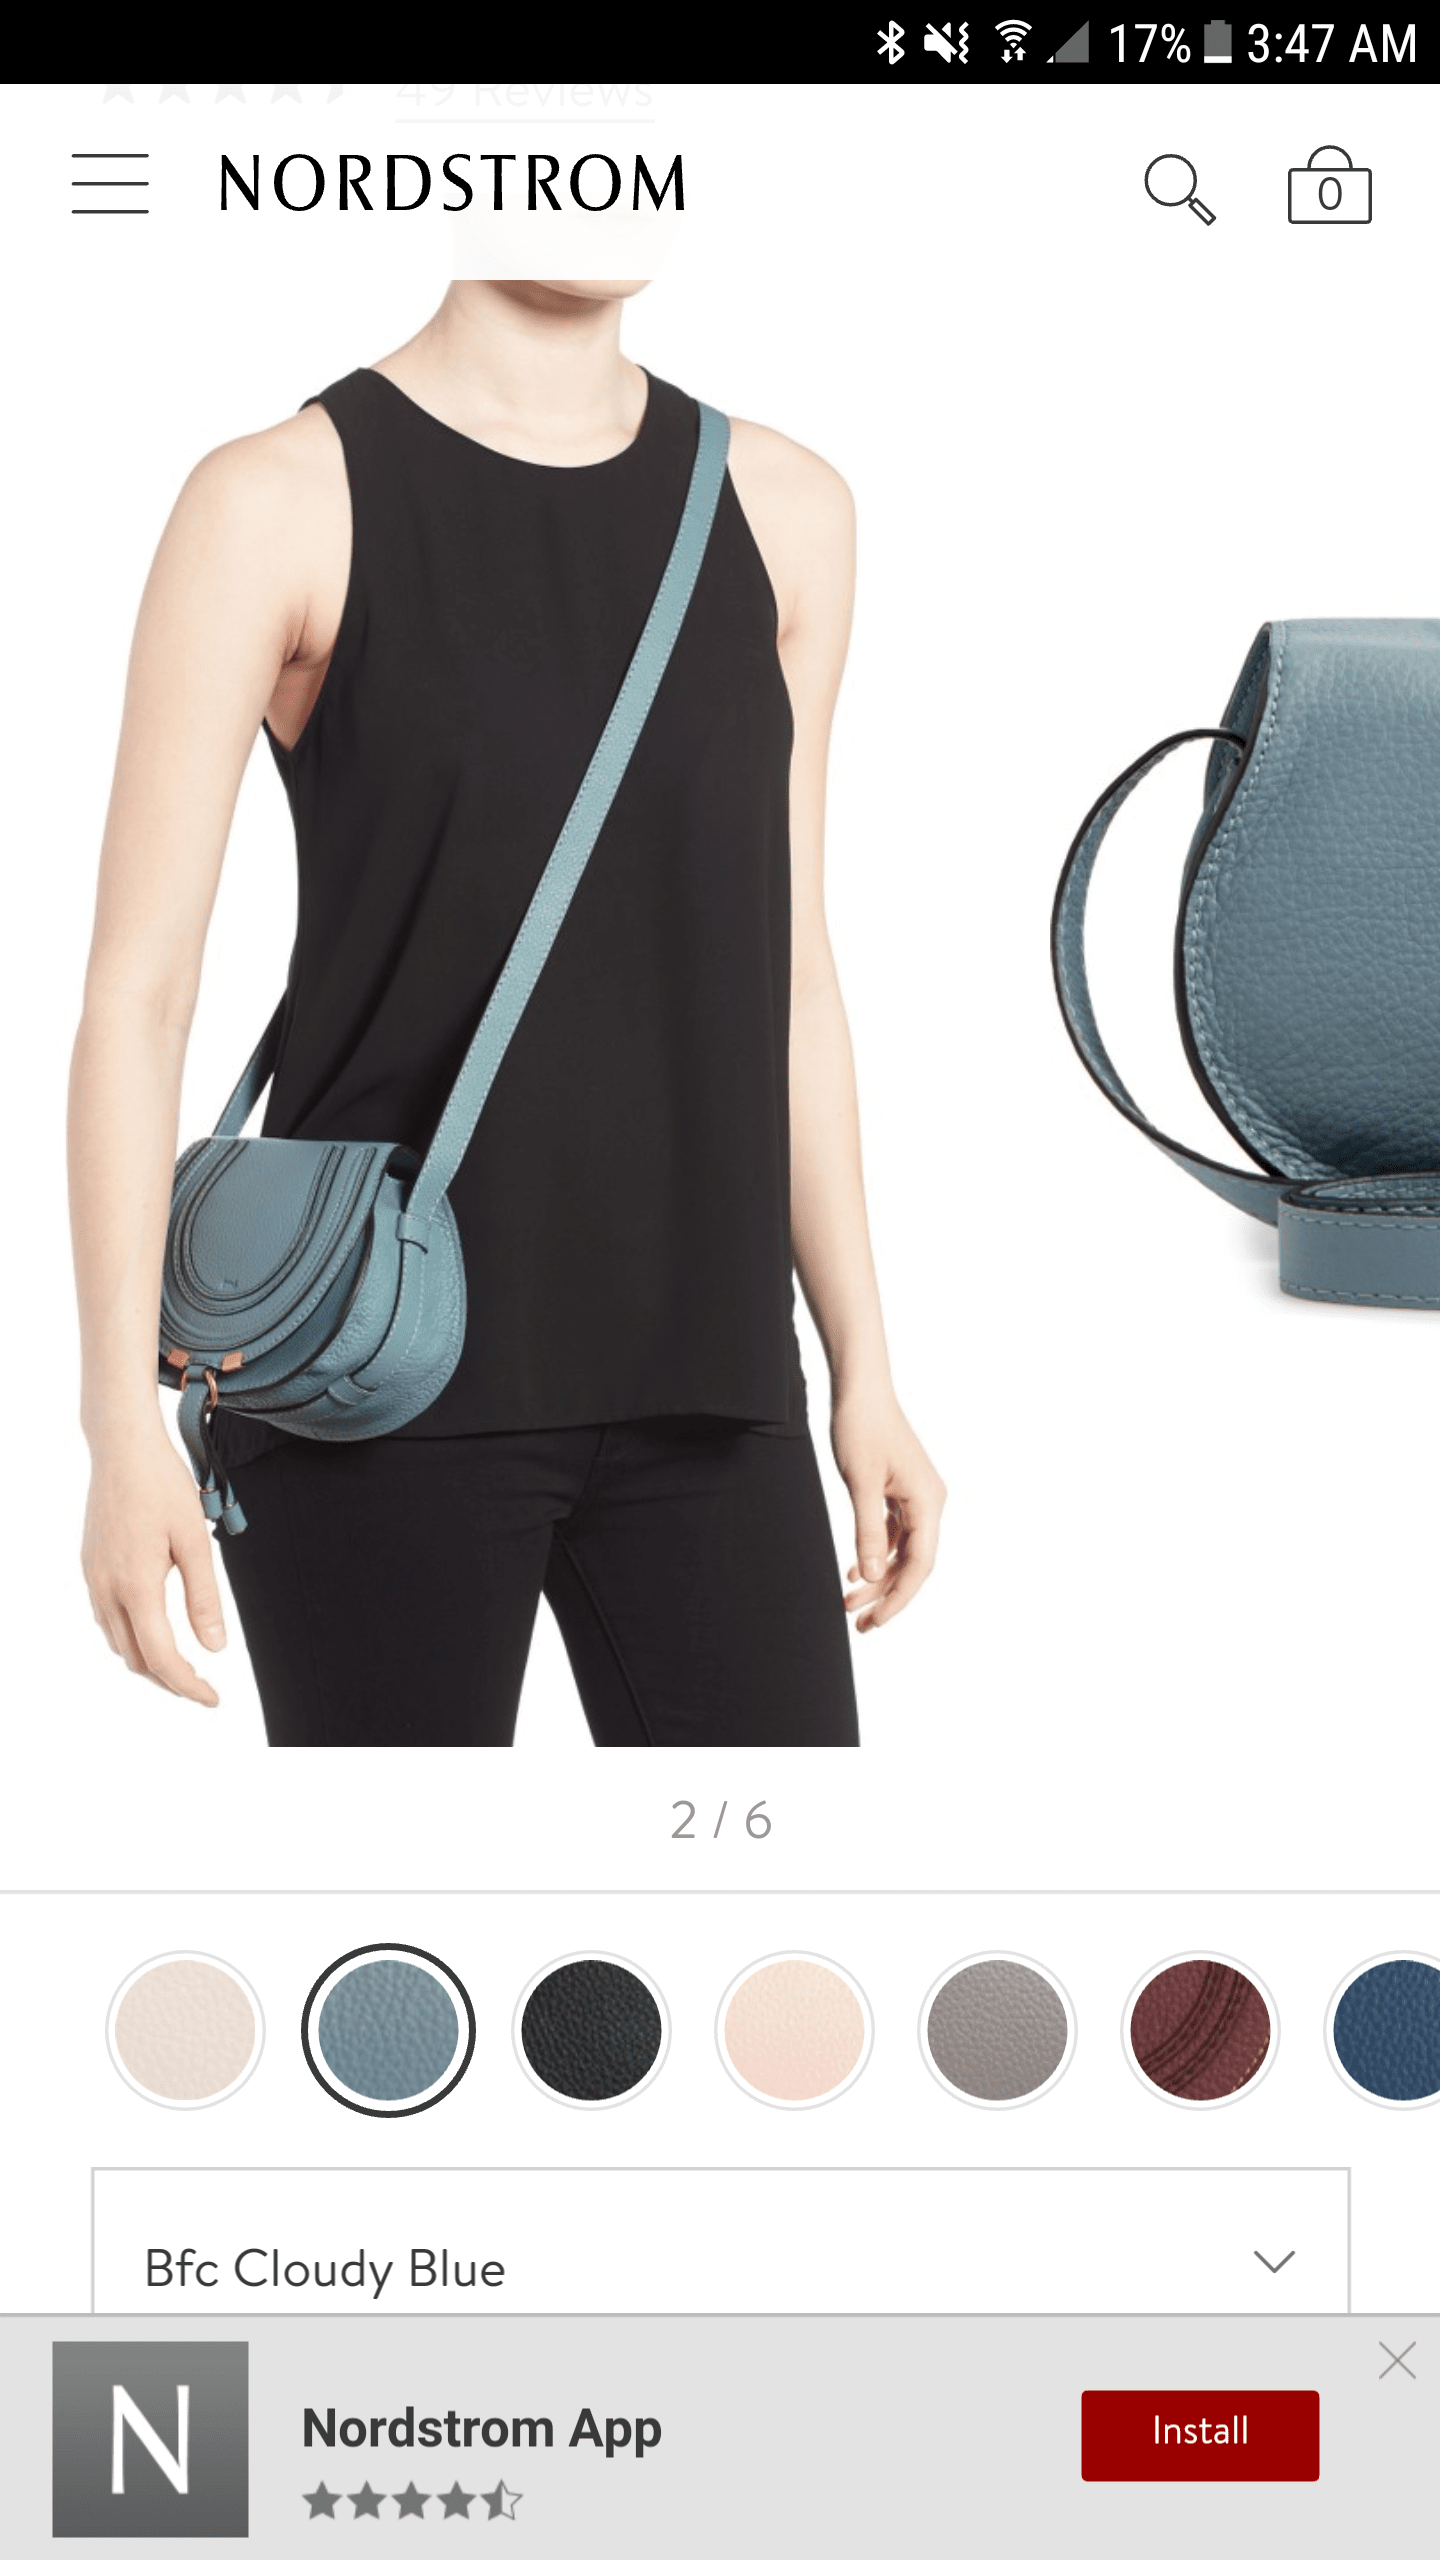 Nordstrom's Real-Time Mobile Product Customization